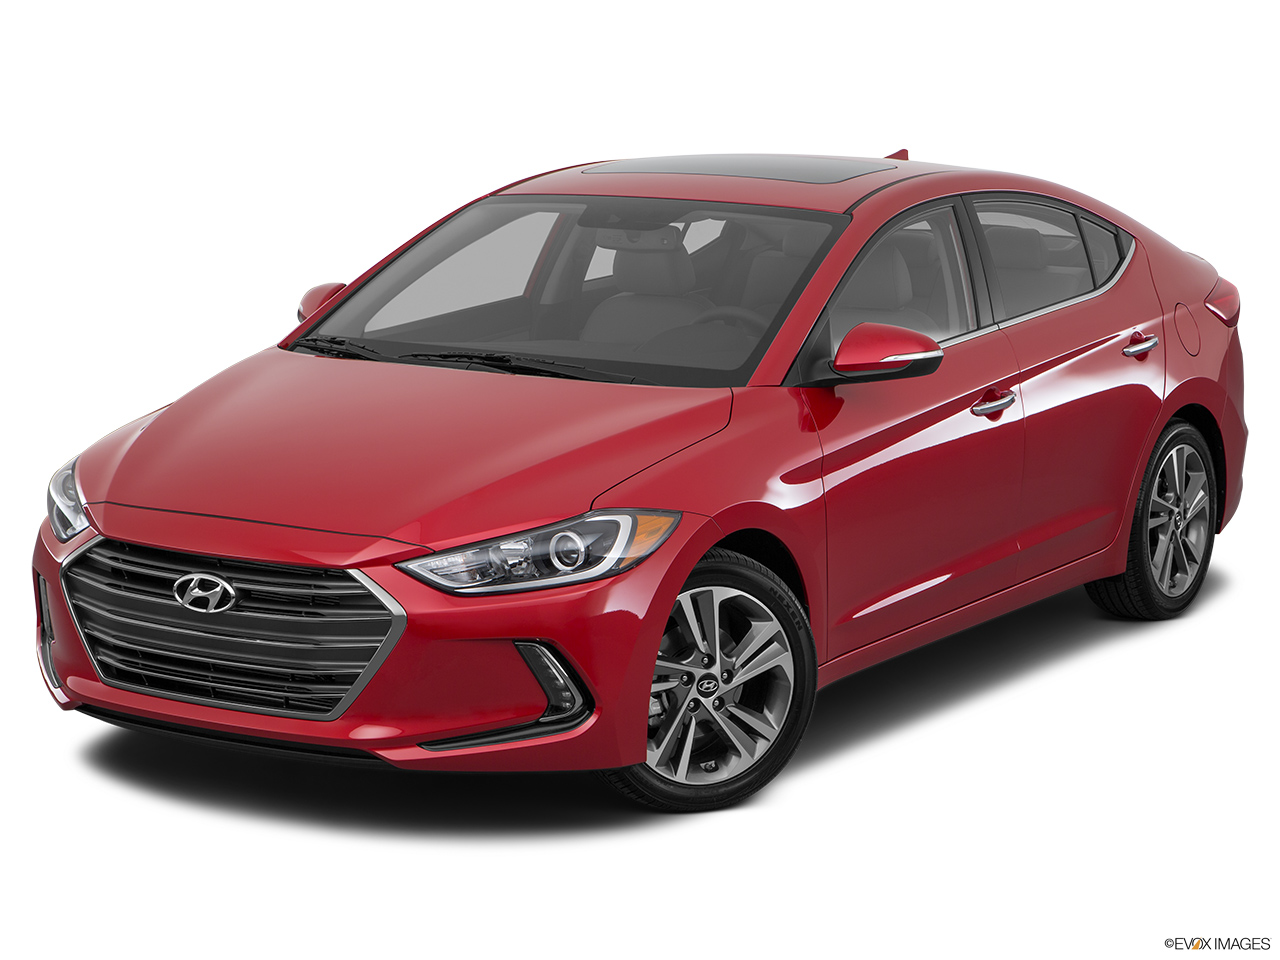 2018 hyundai elantra prices in uae gulf specs reviews for dubai abu dhabi and sharjah. Black Bedroom Furniture Sets. Home Design Ideas